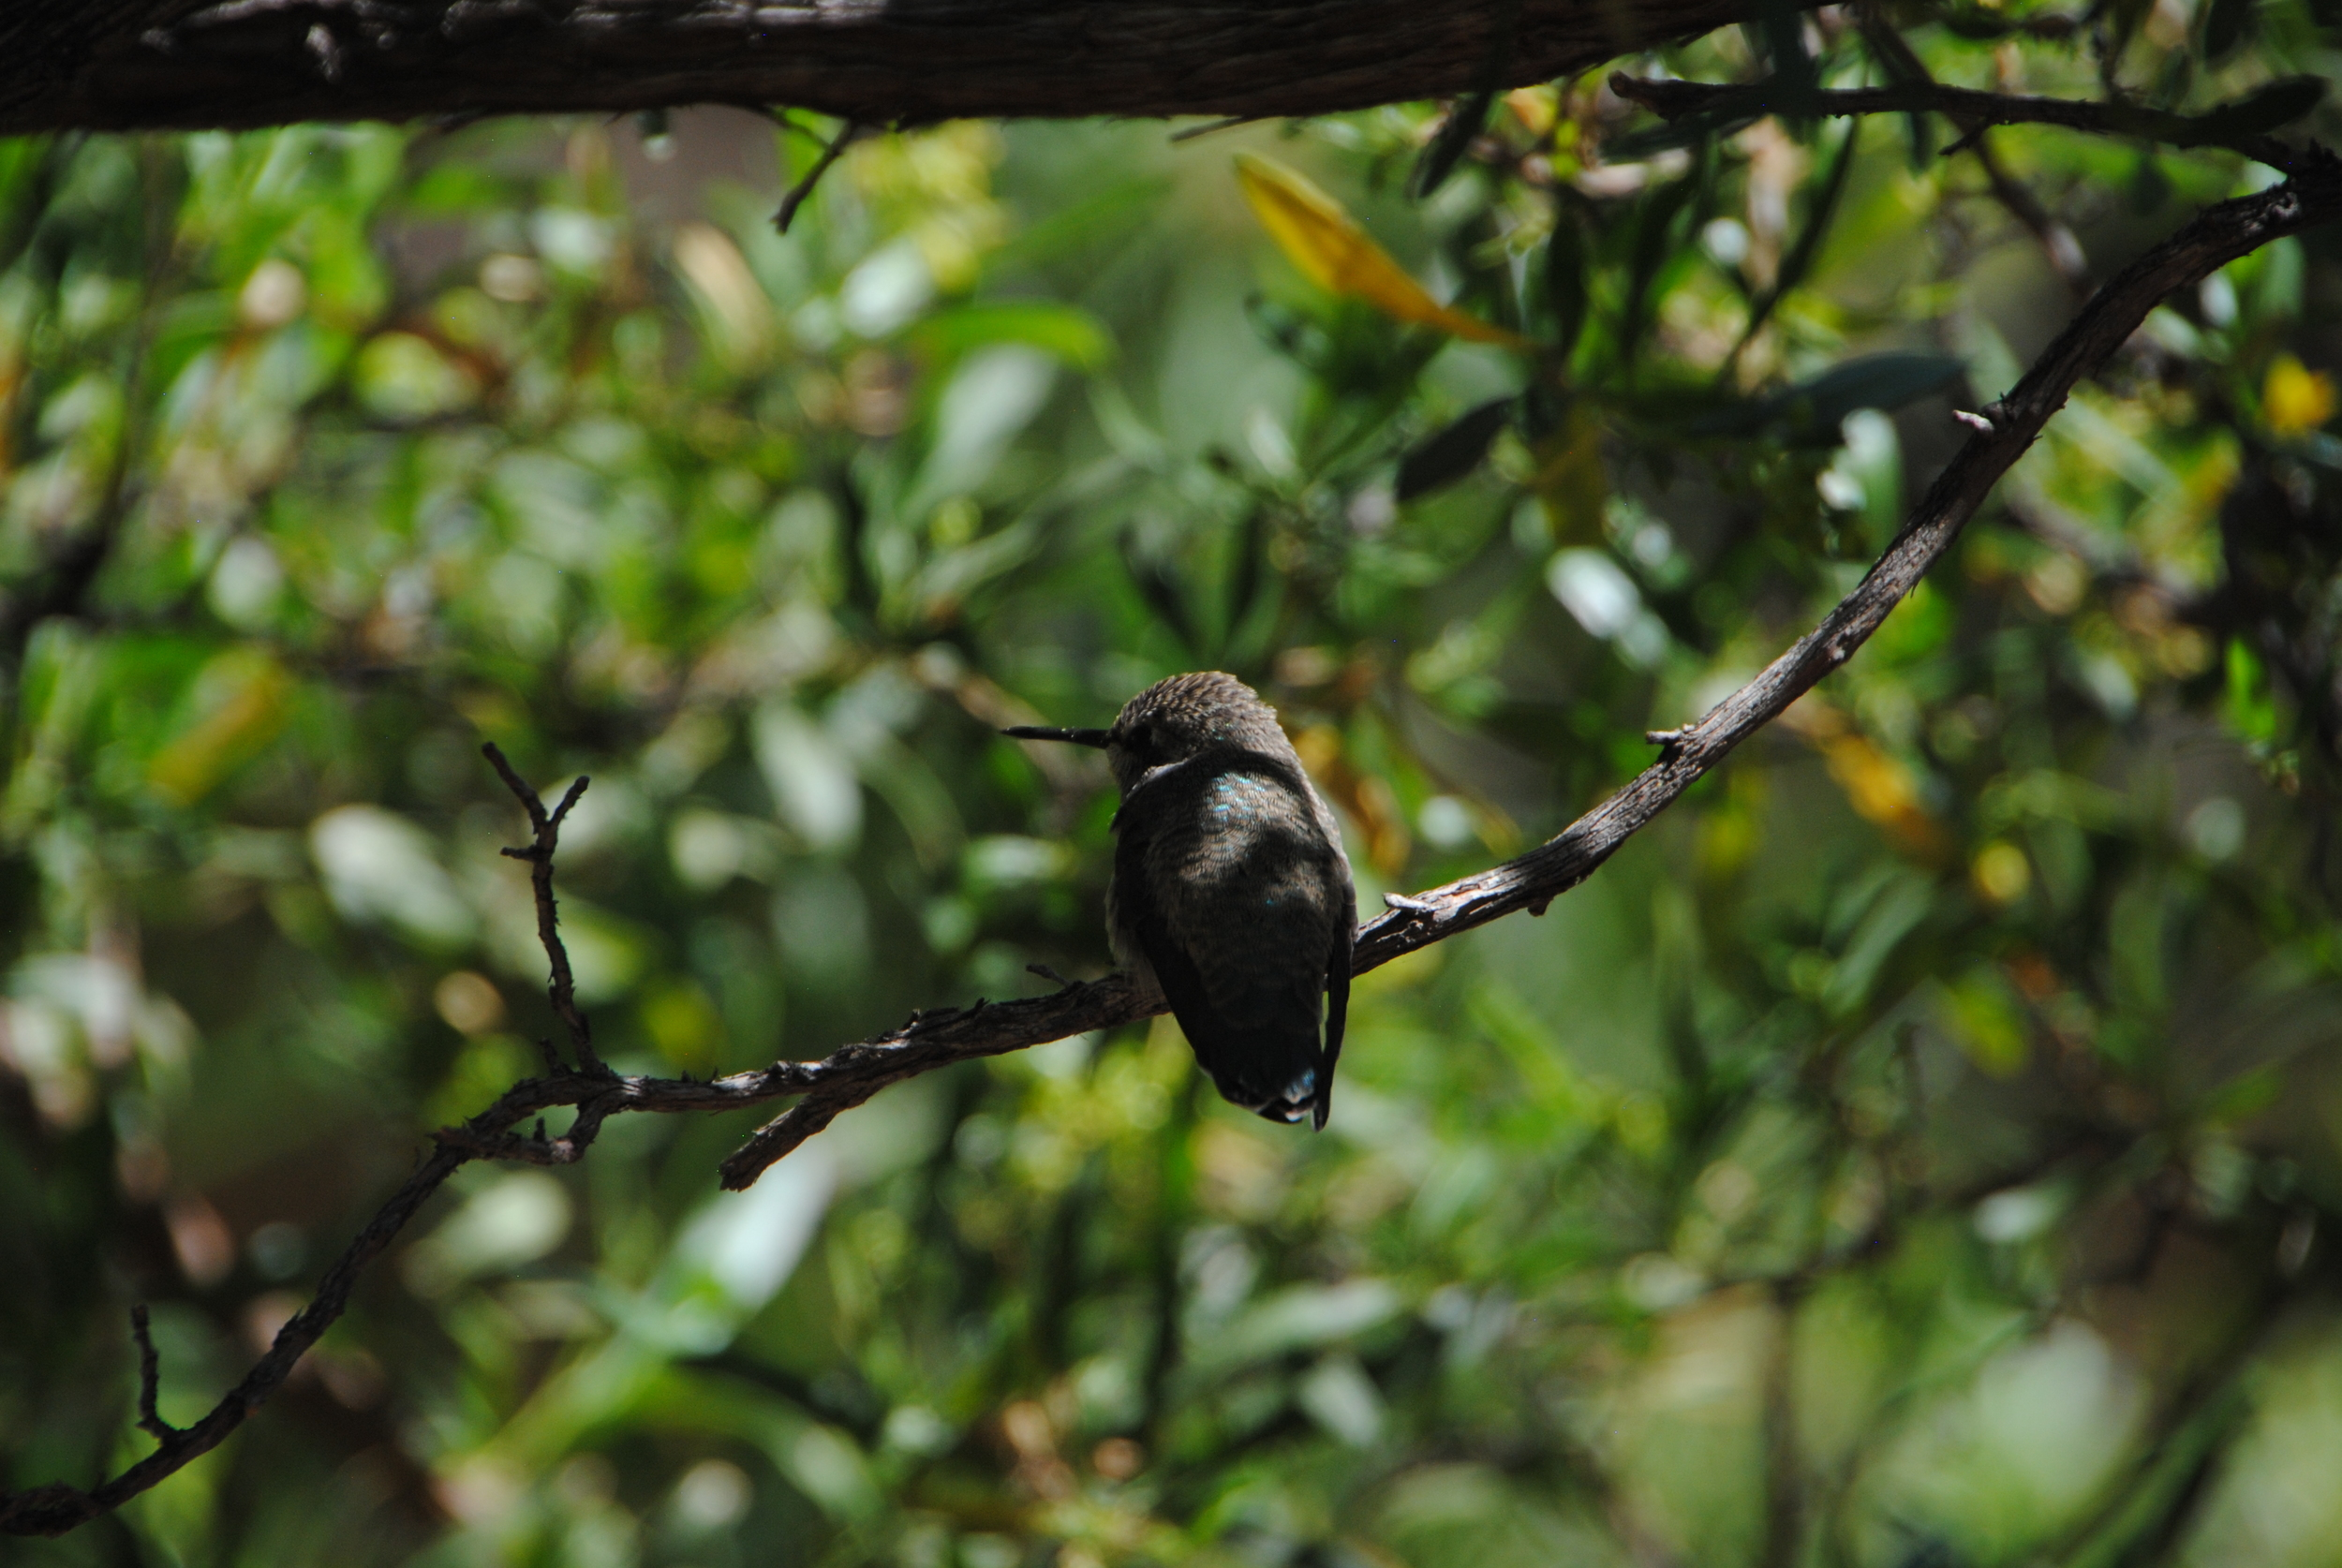 Resting hummer in the enclosed hummingbird exhibit.